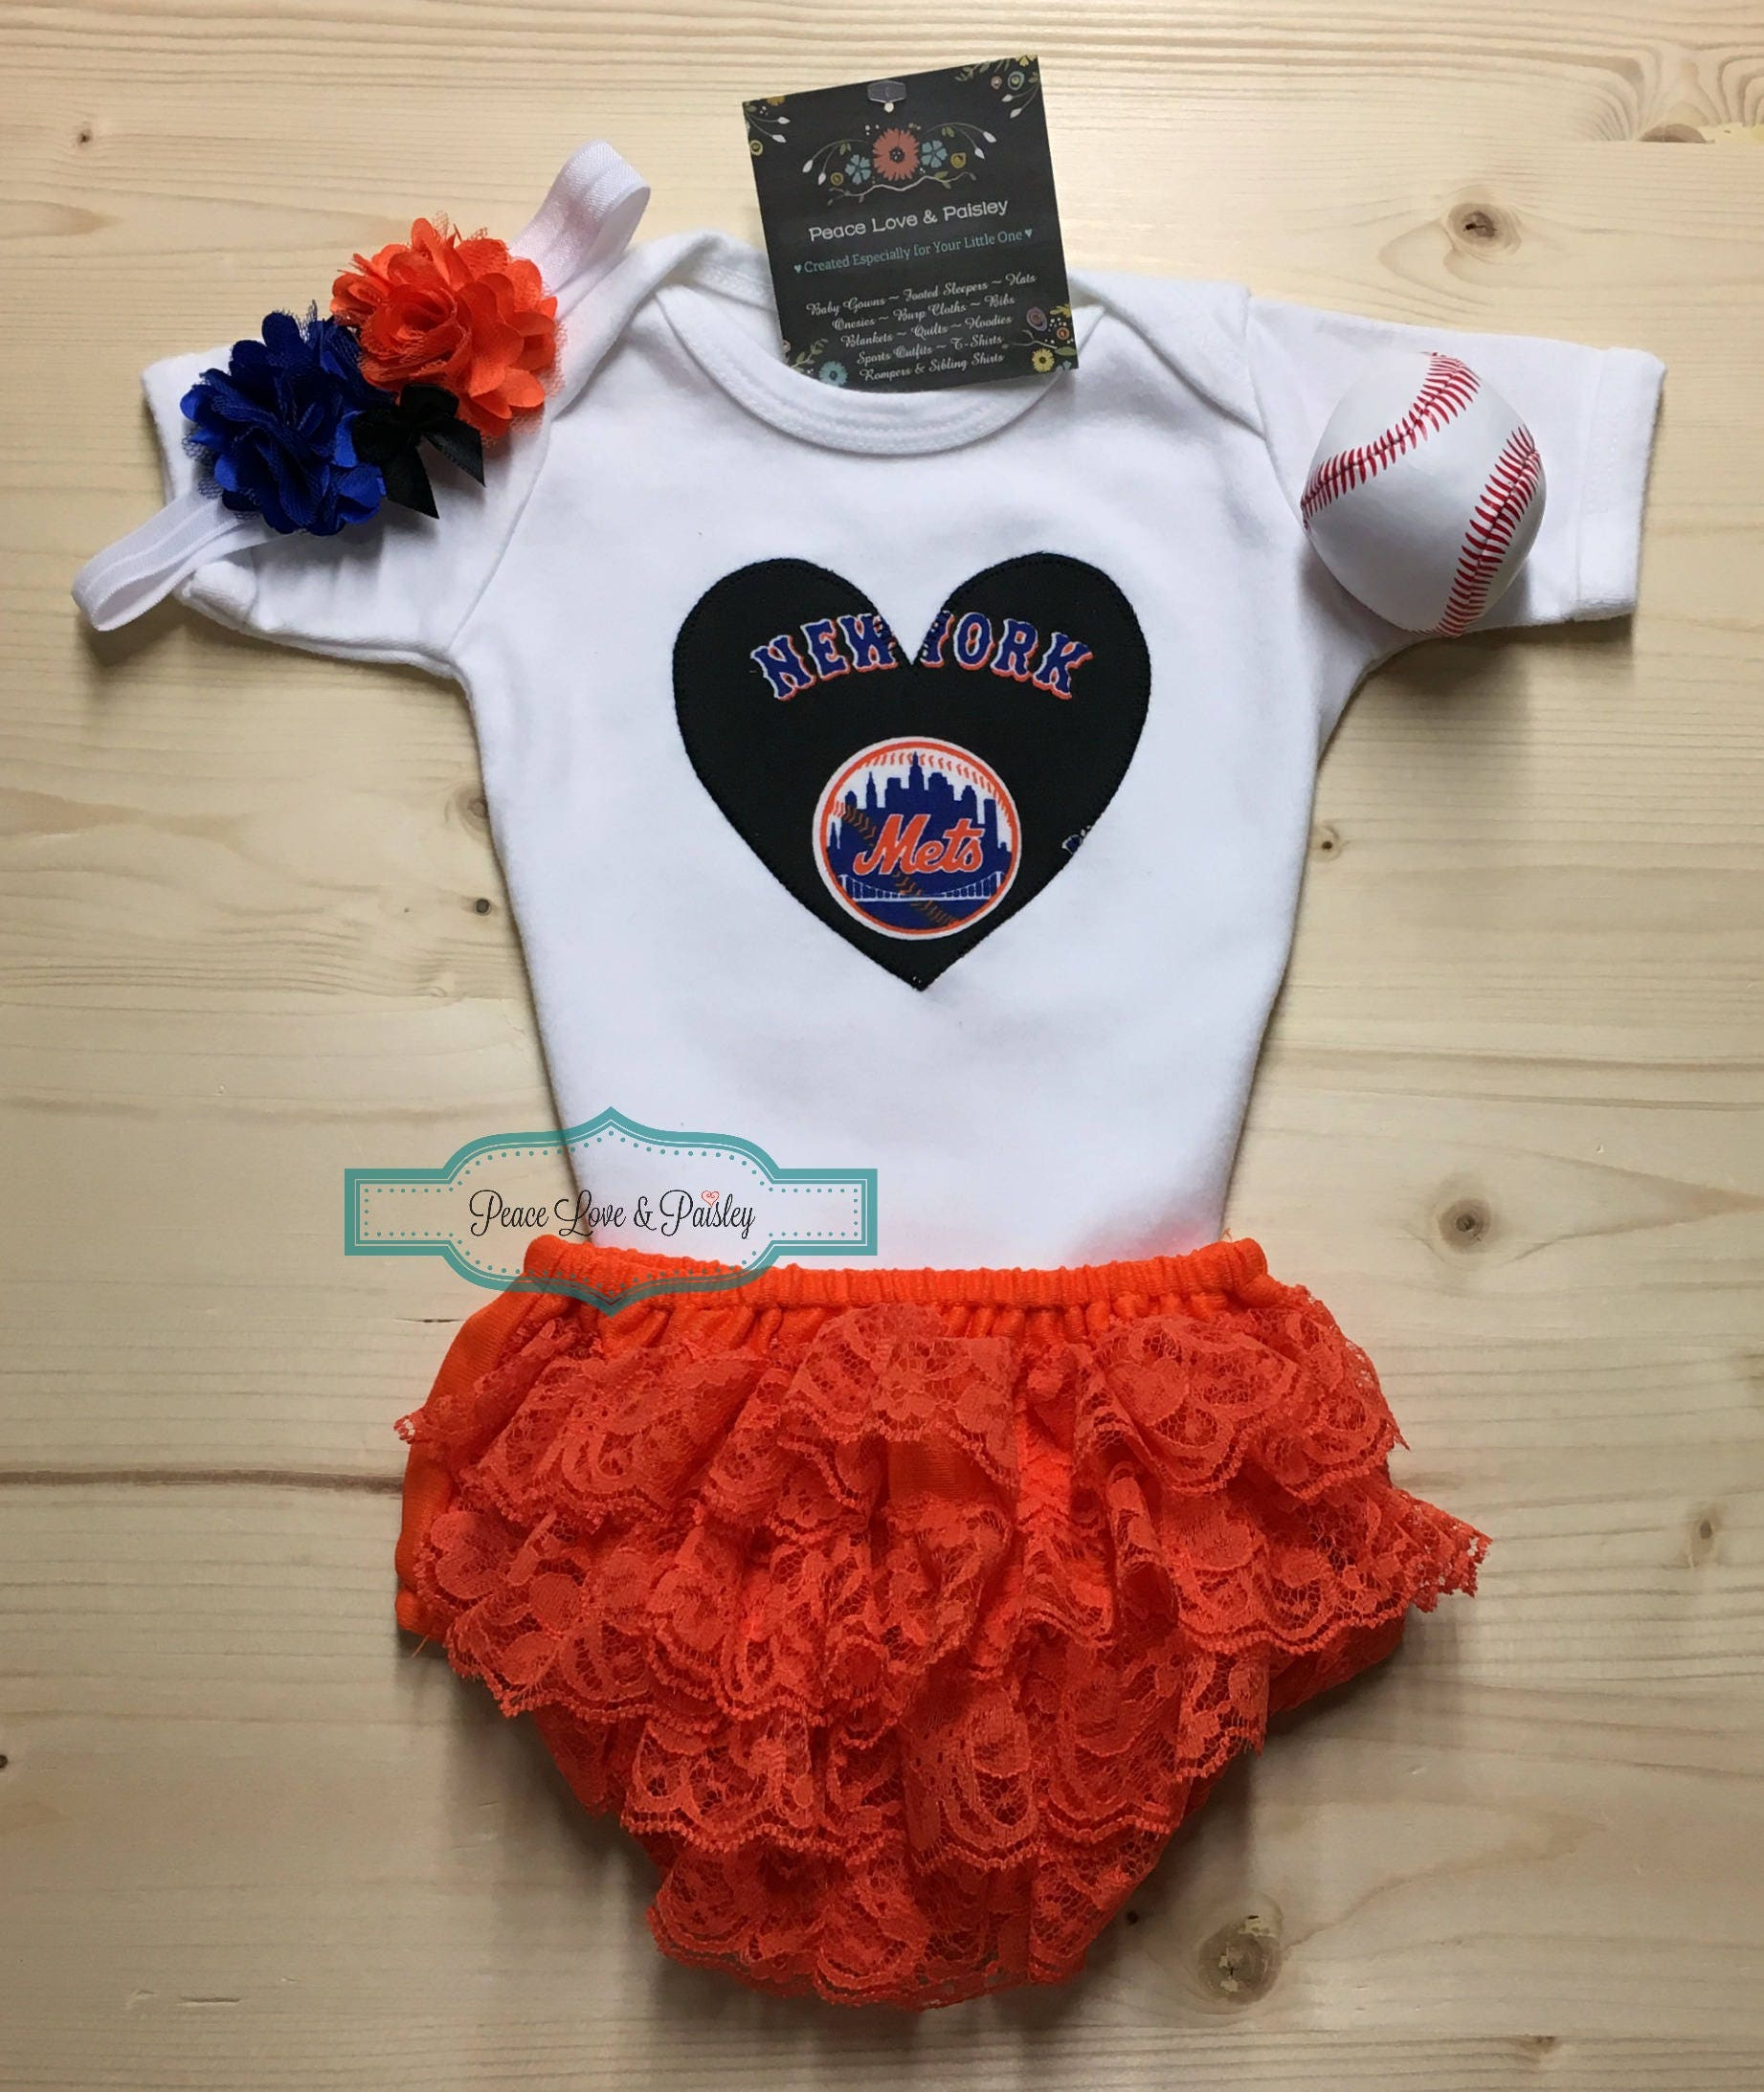 reputable site c2062 dde43 New York Mets Baby Bodysuit, Ruffle Diaper Cover and Headband Set Made from  NY Mets Fabric, Mets Baby, Baseball Baby, NY Baby, MLB Baby Girl